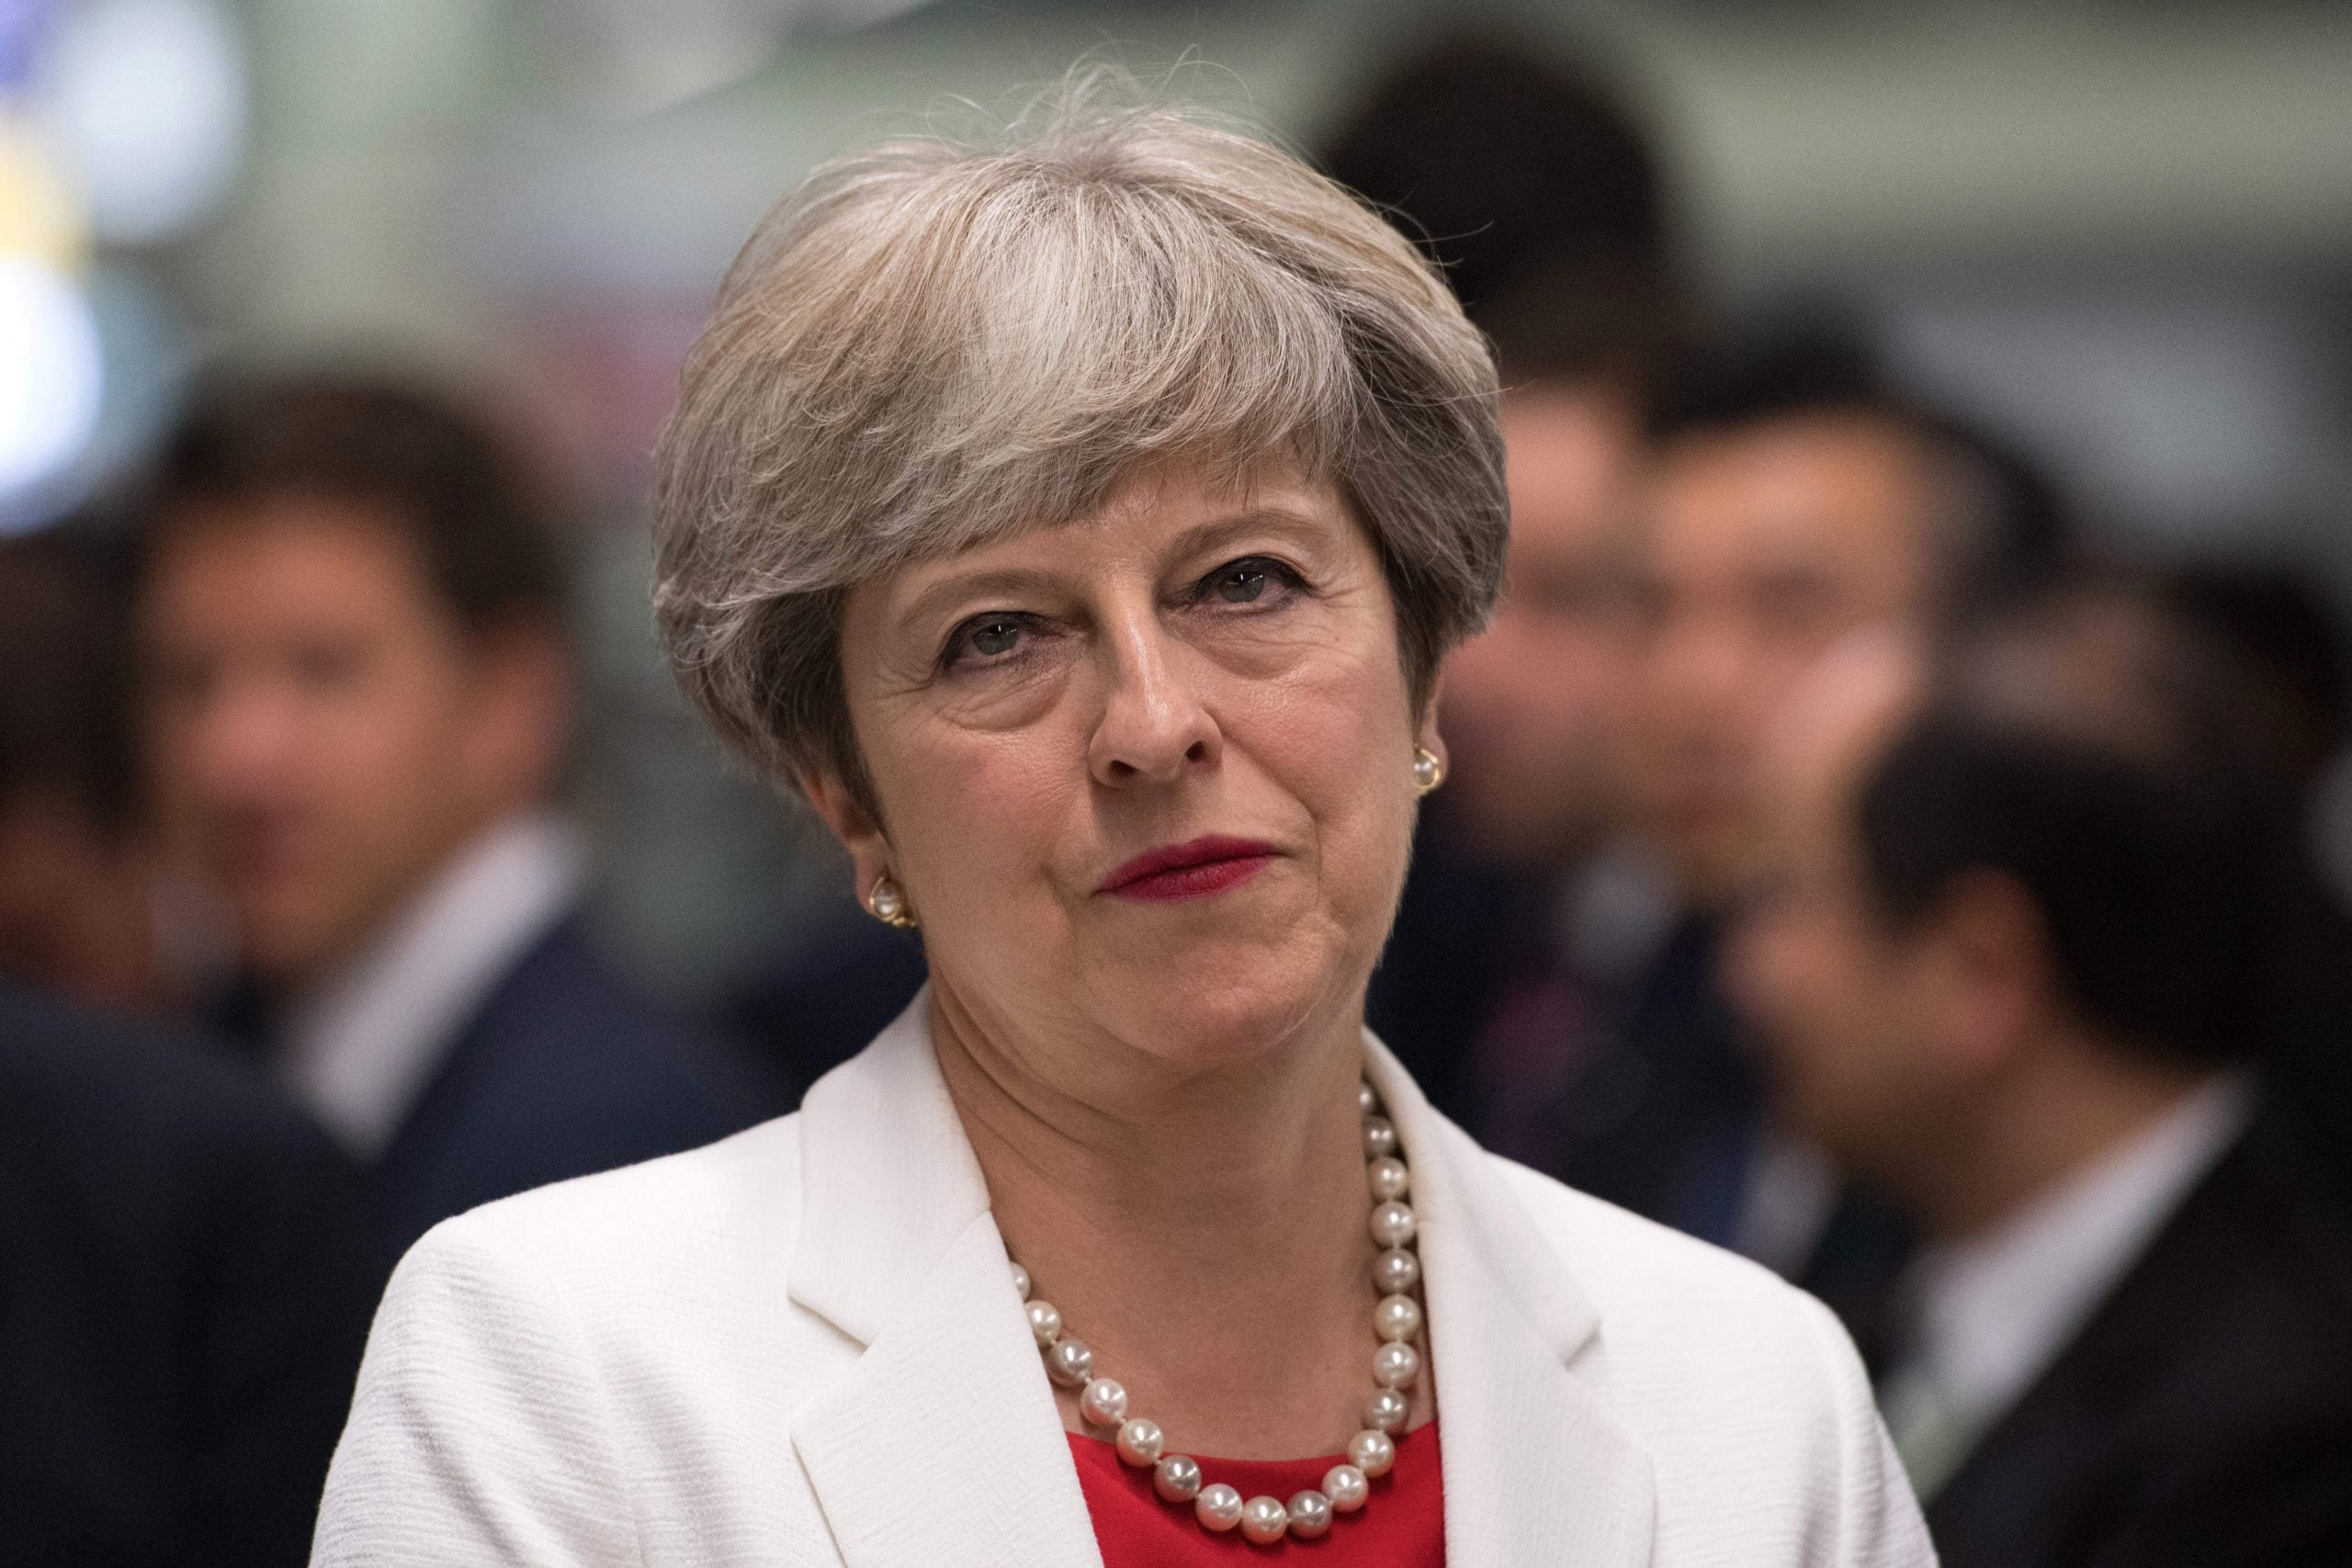 Whatever Theresa May says, her party won't let her fight another general election